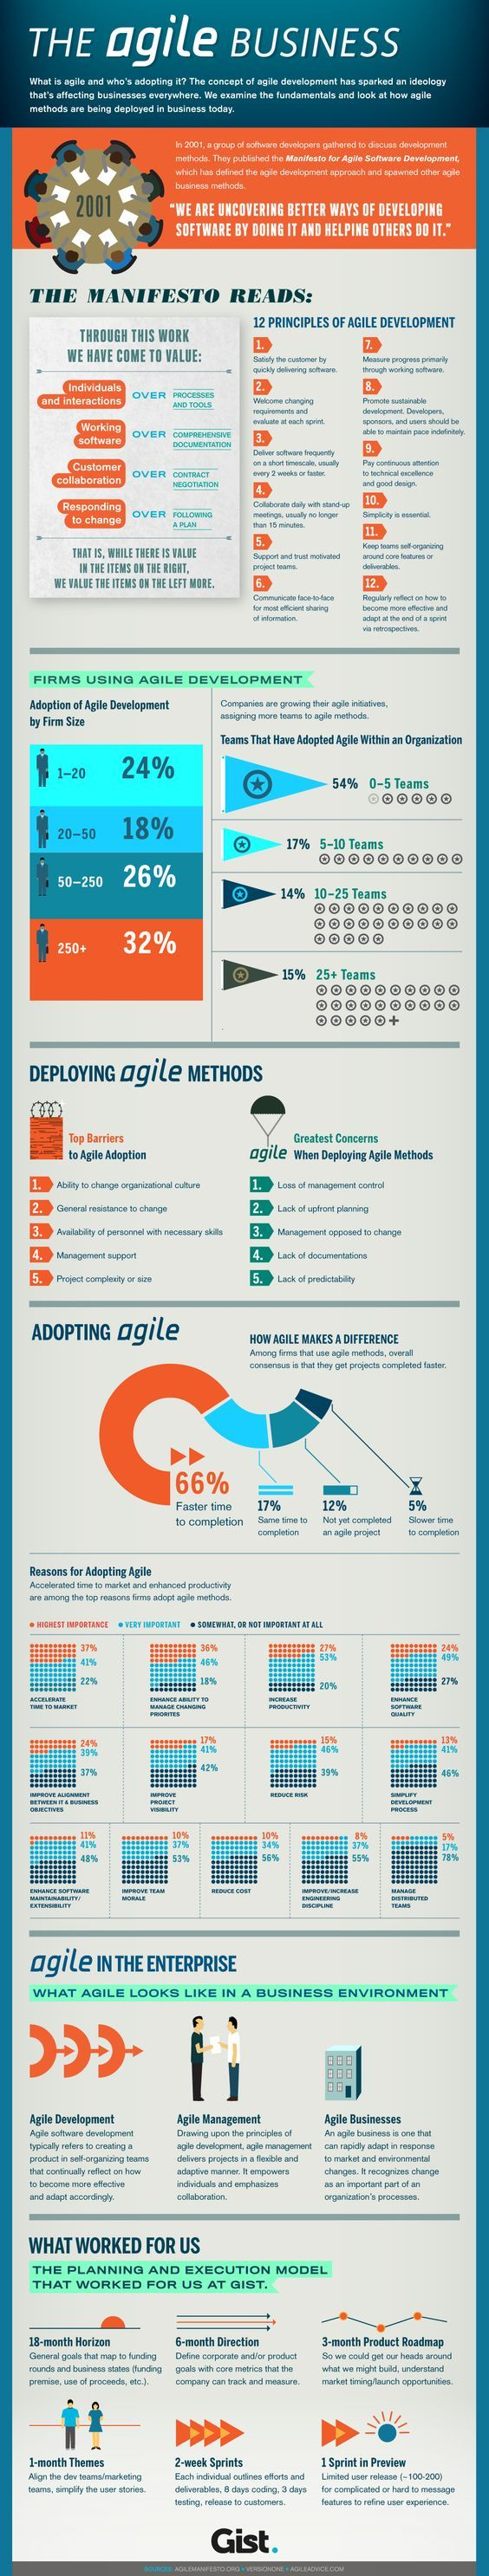 The Agile Business -- covers how agile software development methods are being adapted for running a business today